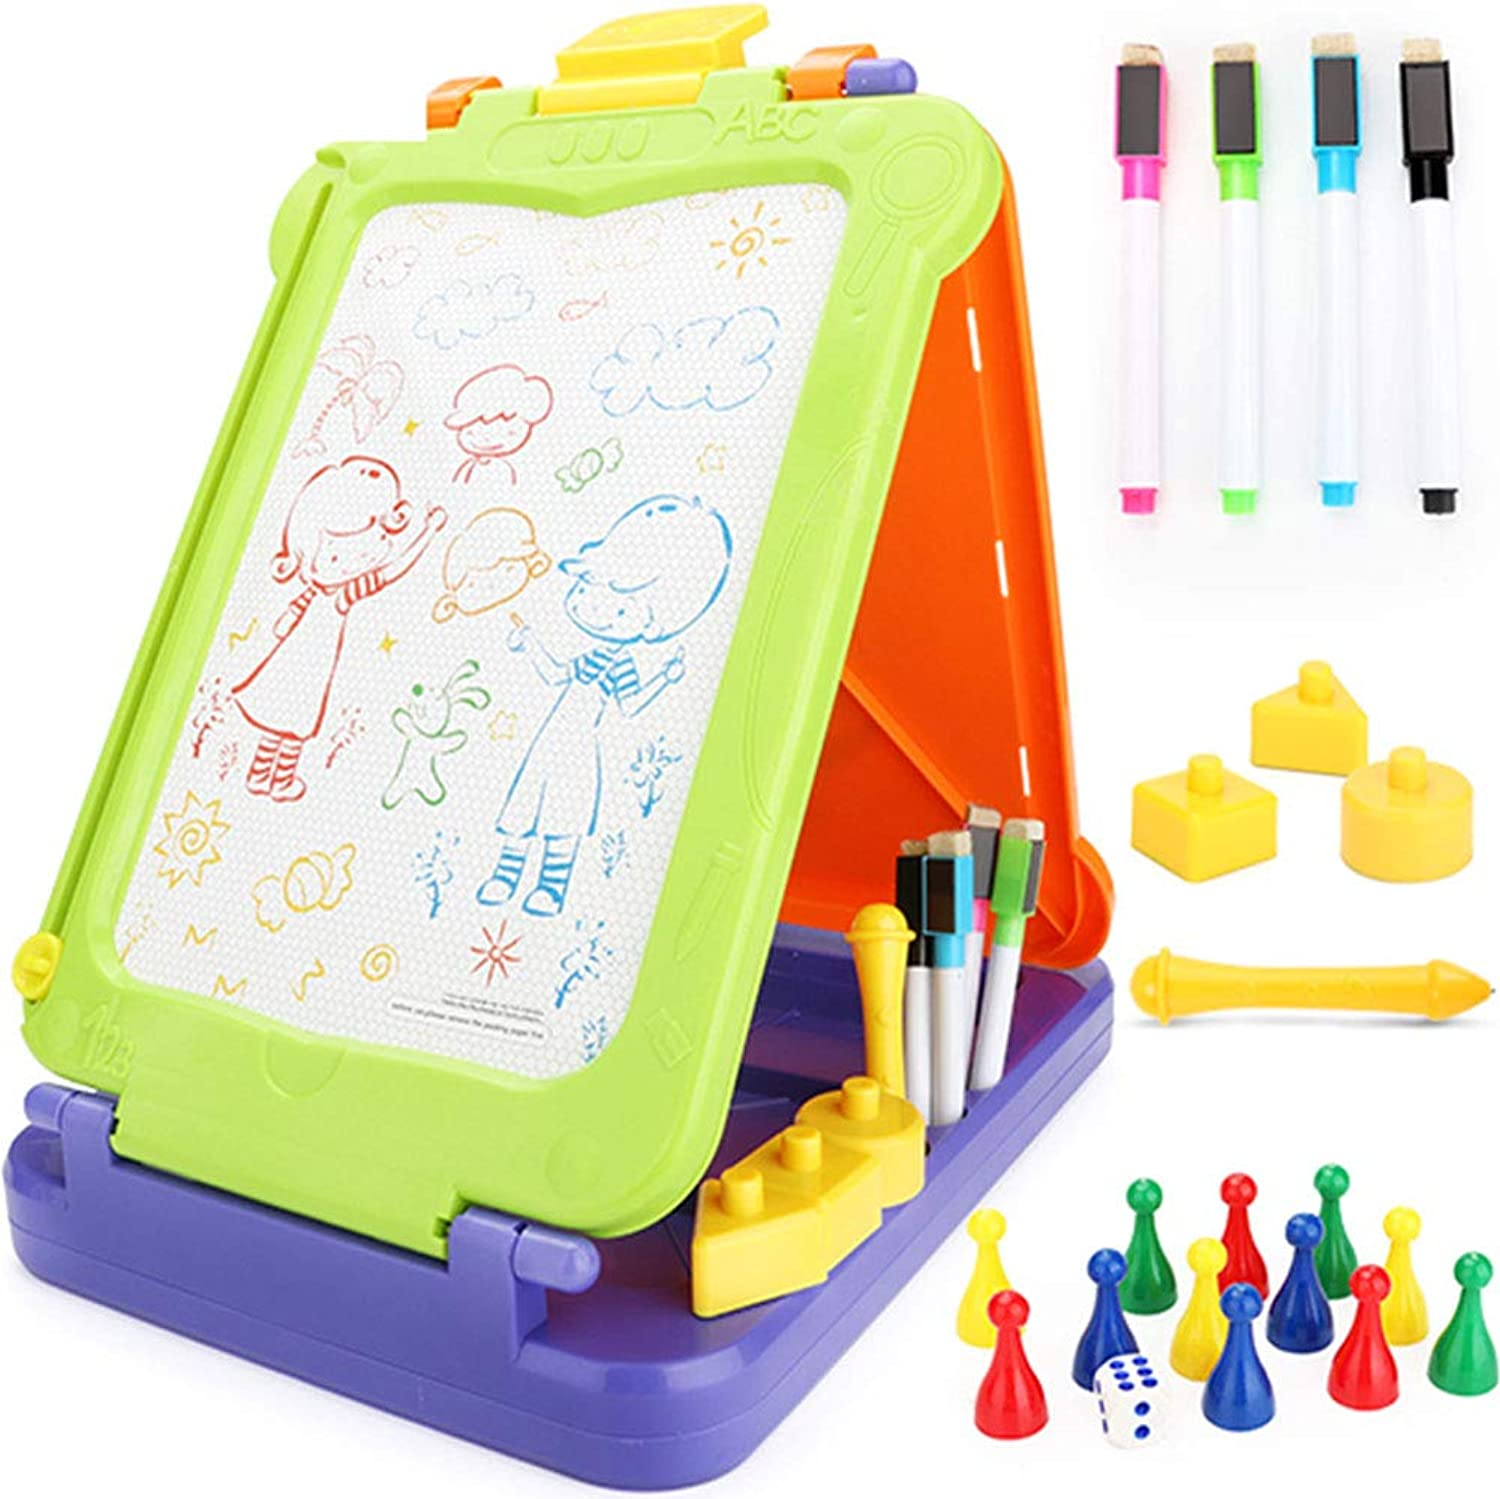 Black Temptation Three sides Magnetic Drawing Board,Writing Board,Doodle Board kids for learning